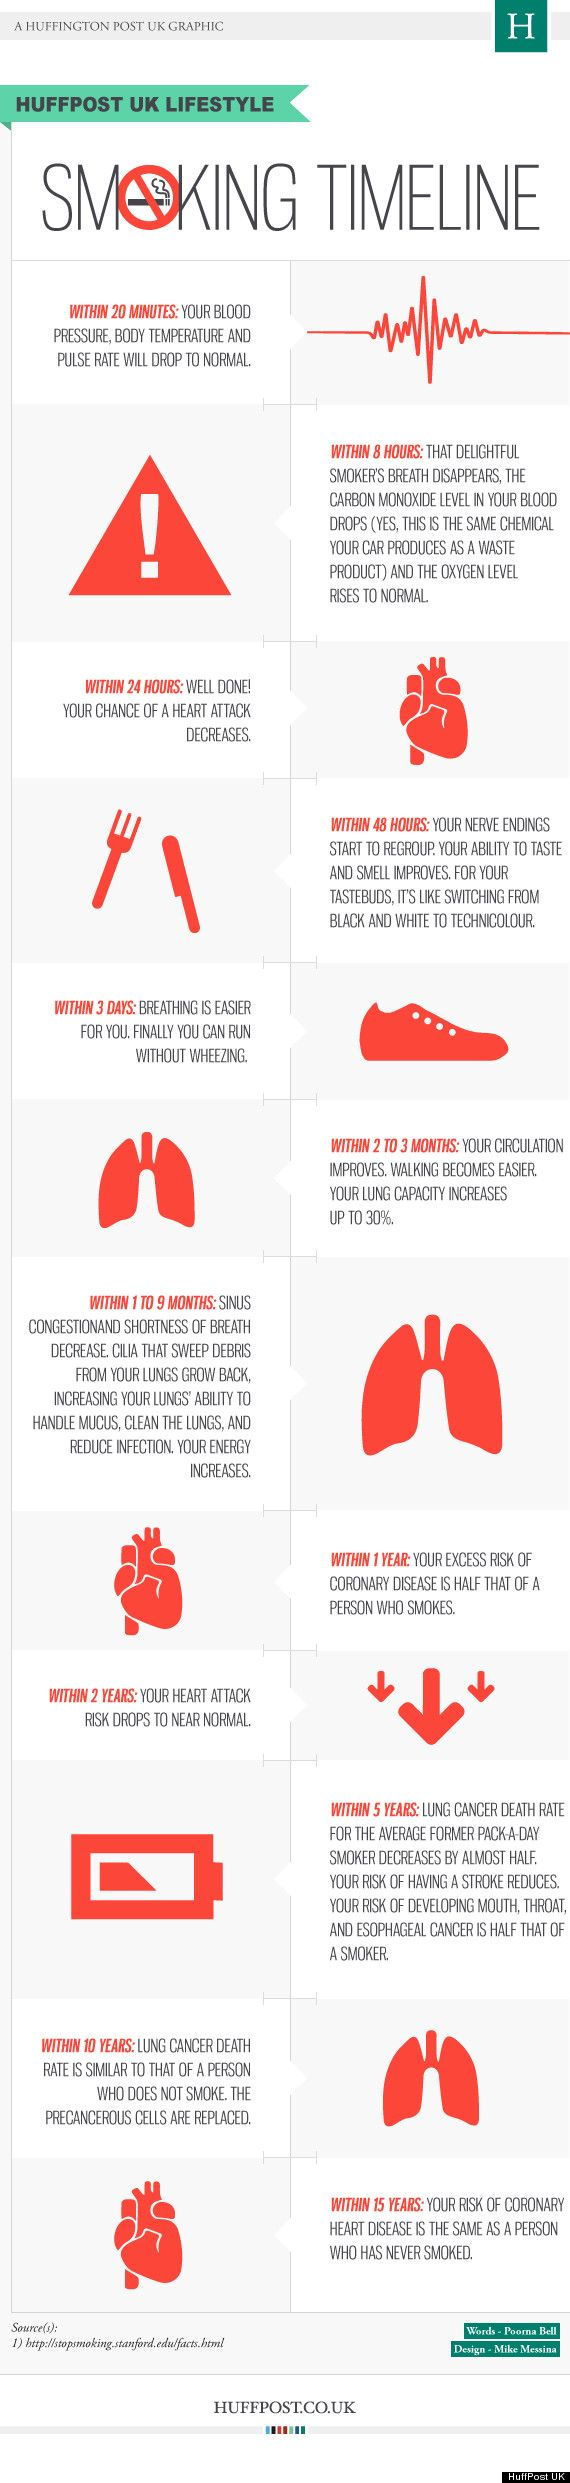 What Happens To Your Body When You Stop Smoking #INFOGRAPHIC #smoking #timeline